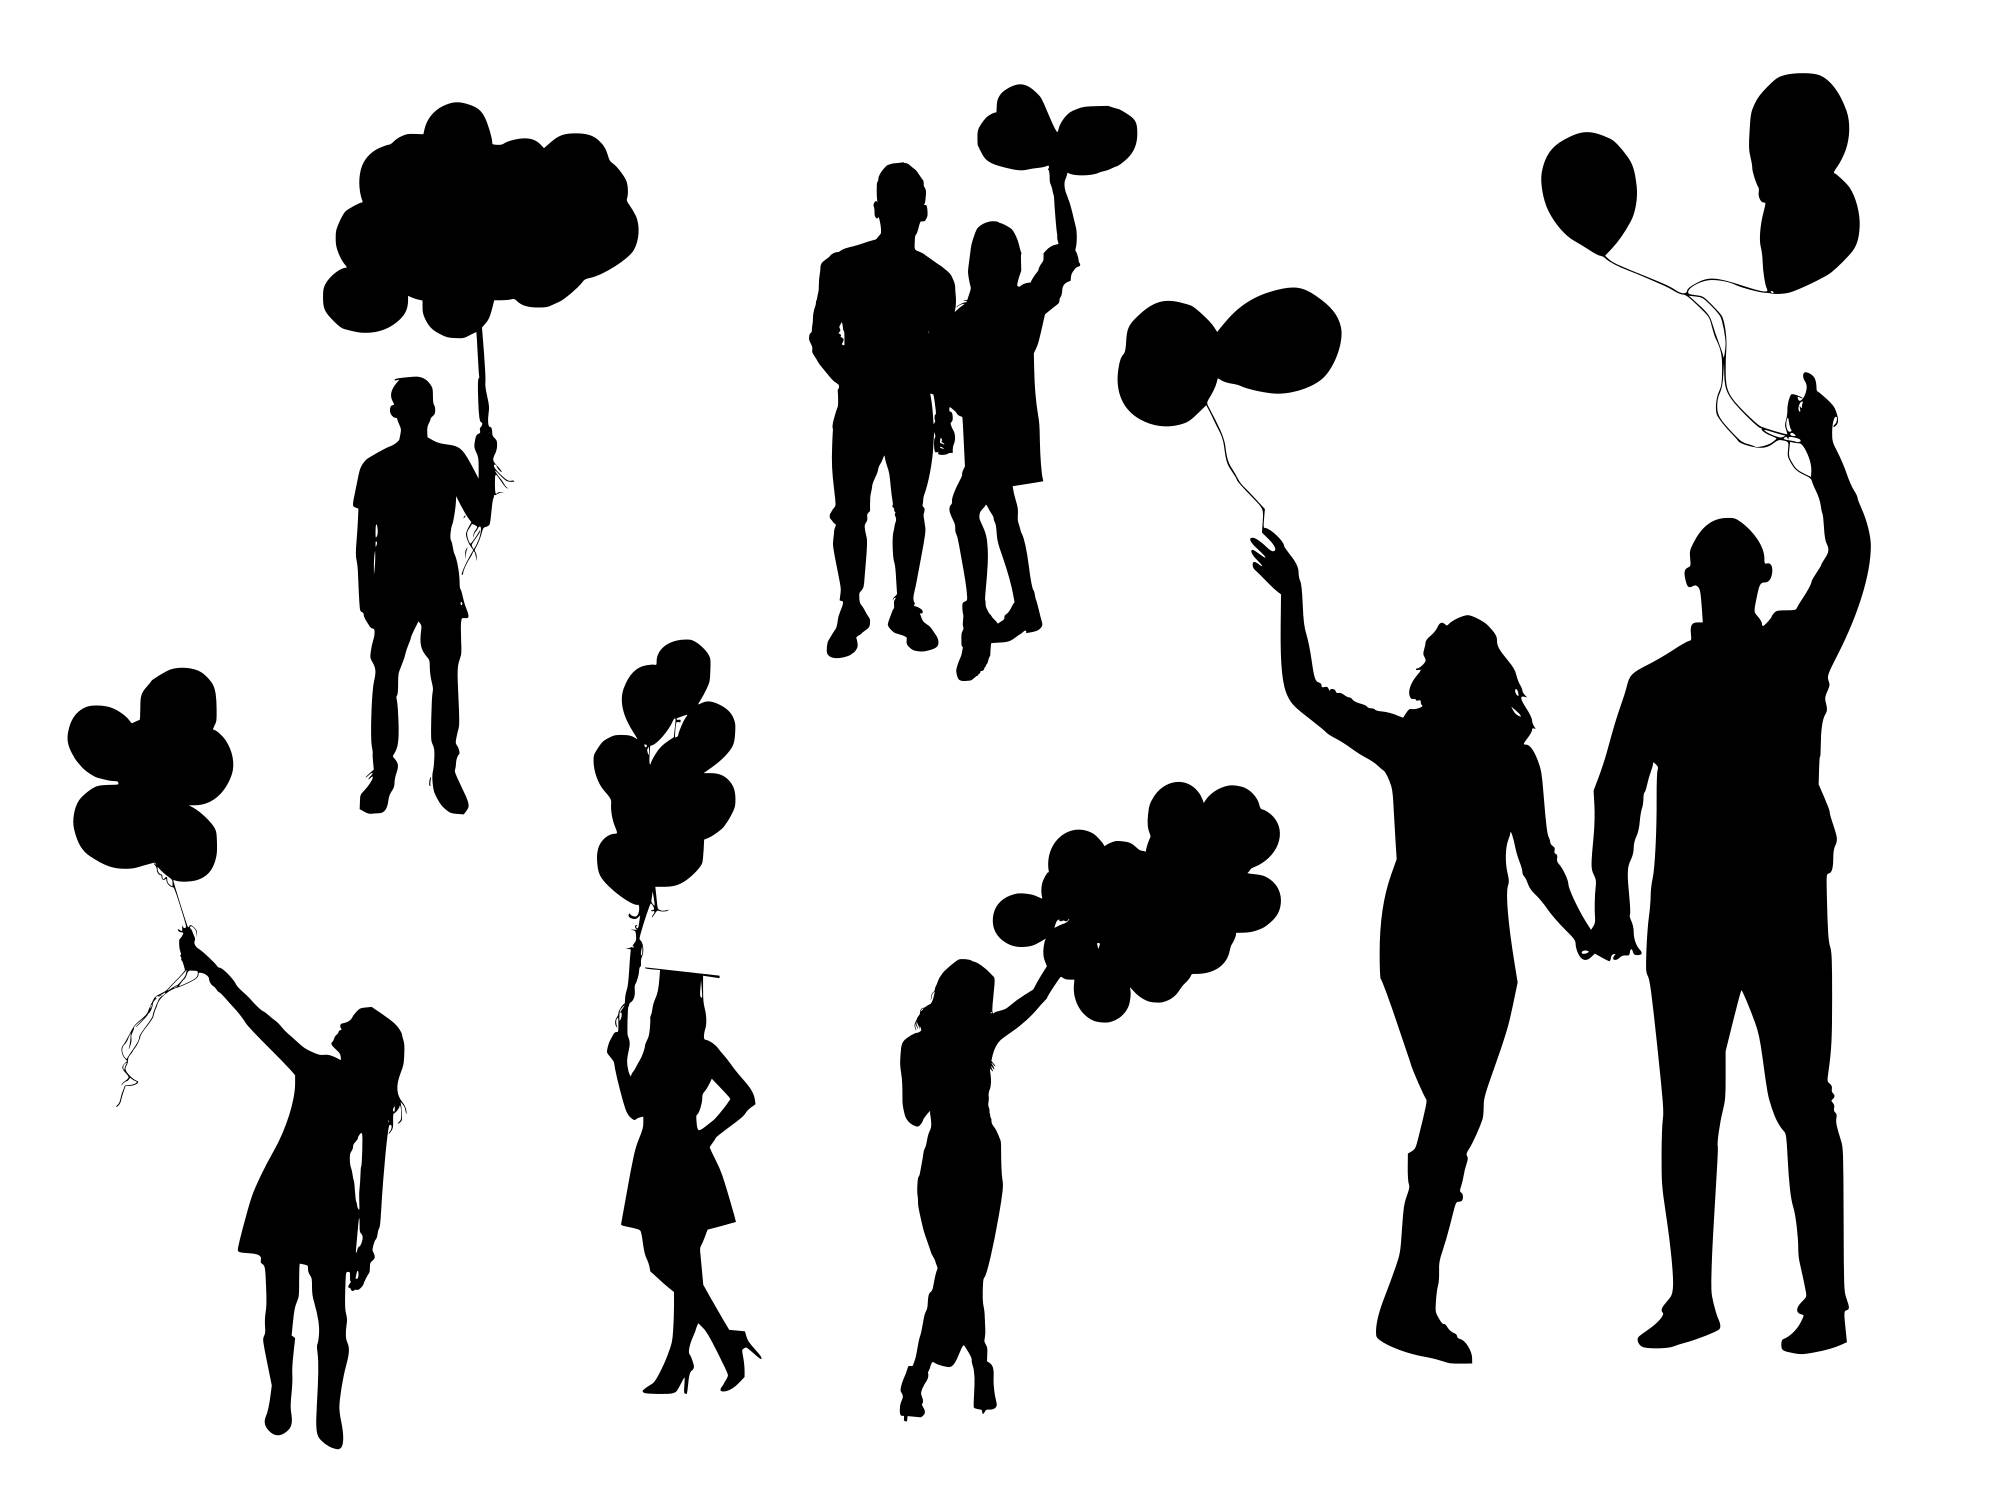 people-with-baloon-silhouette-cover.jpg